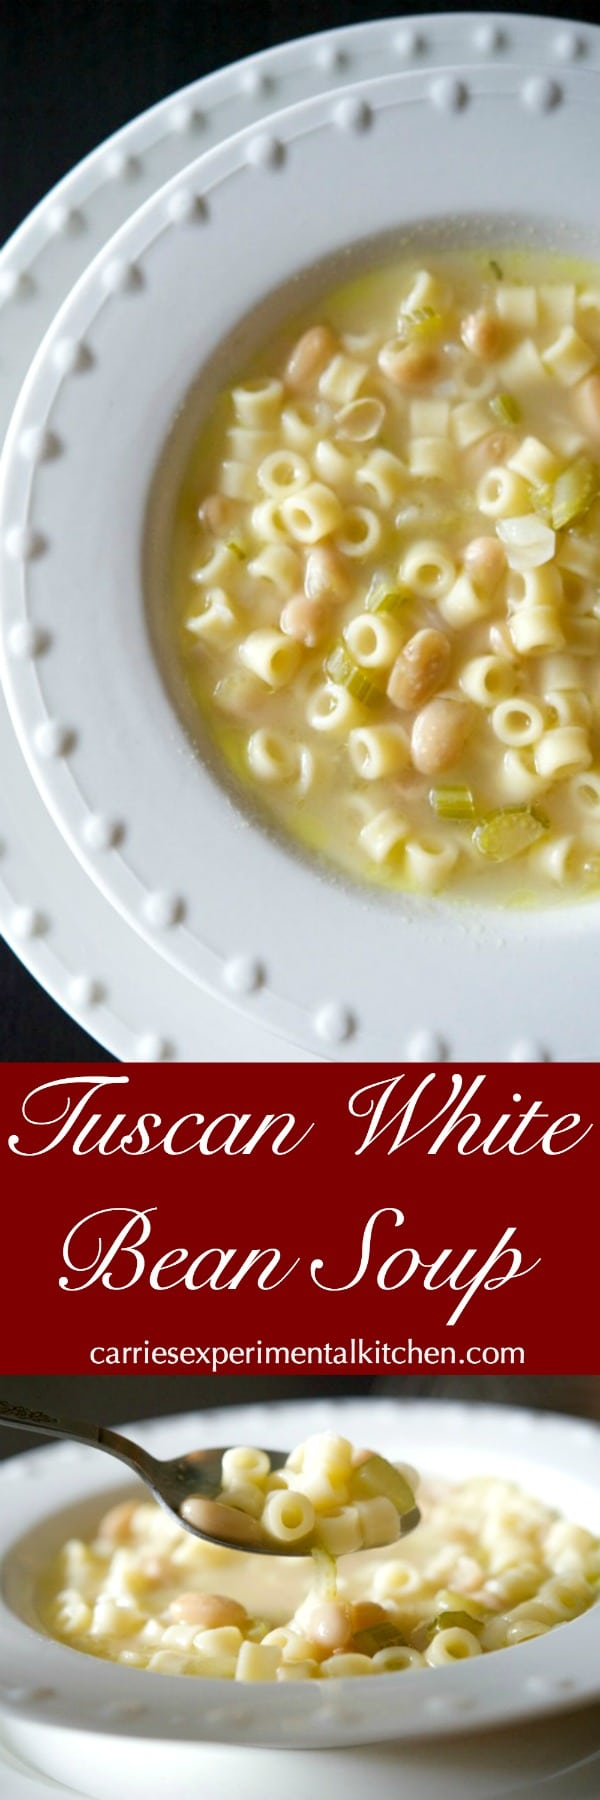 Tuscan White Bean Soup is a hearty, delicious Italian soup made with simple ingredients like celery, cannellini beans, Ditalini pasta and chicken broth.#soup